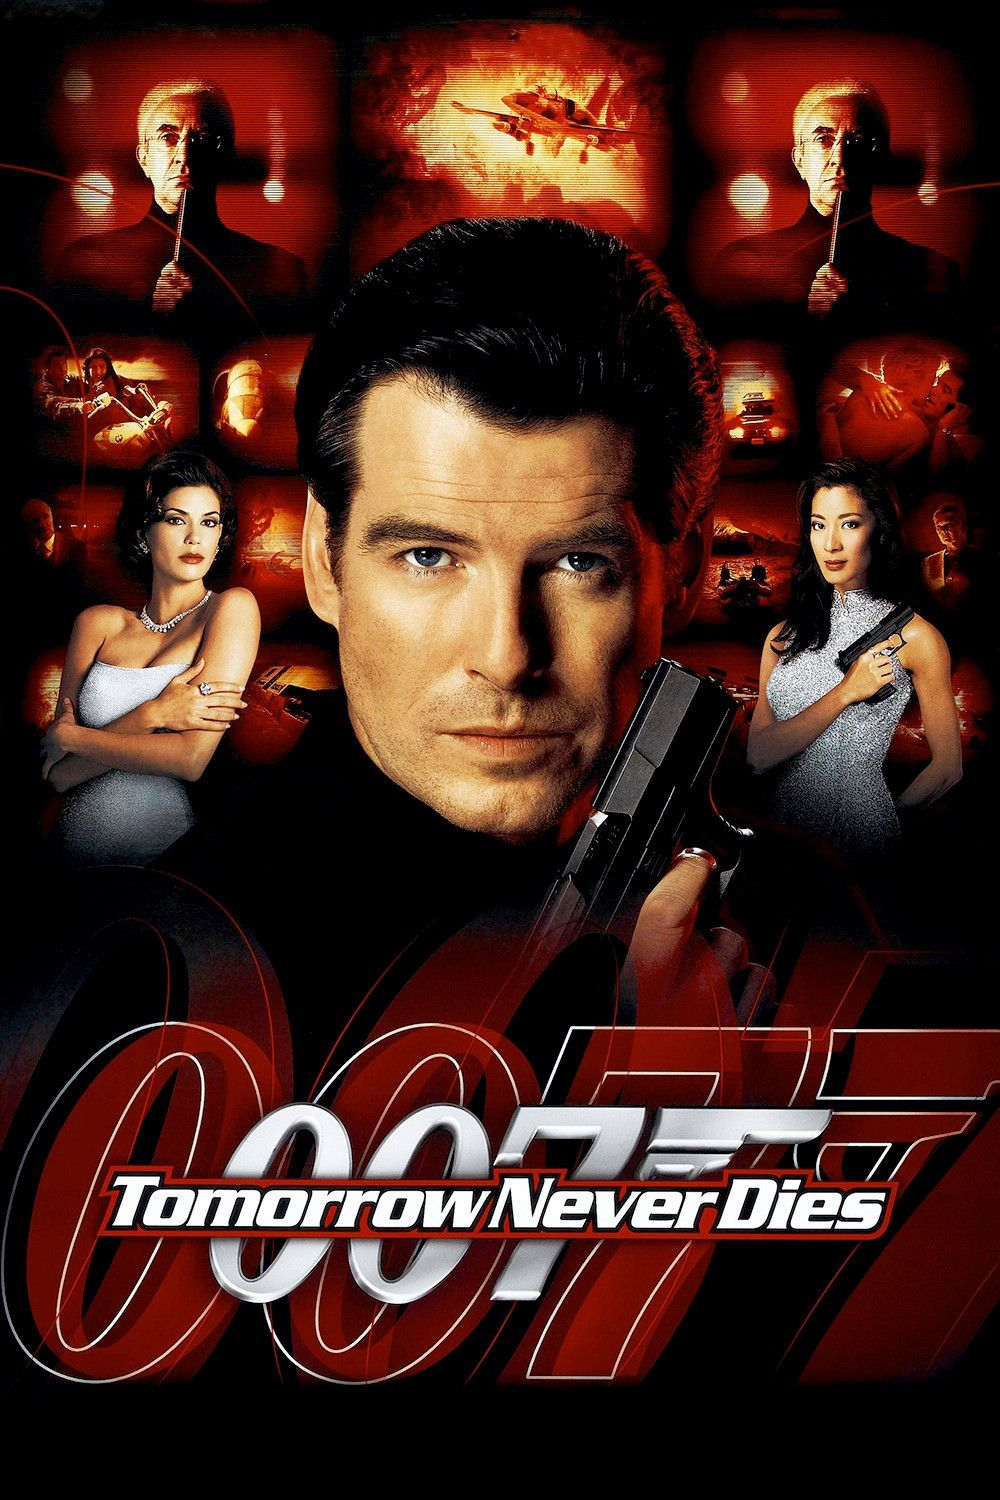 Tomorrow Never Dies: